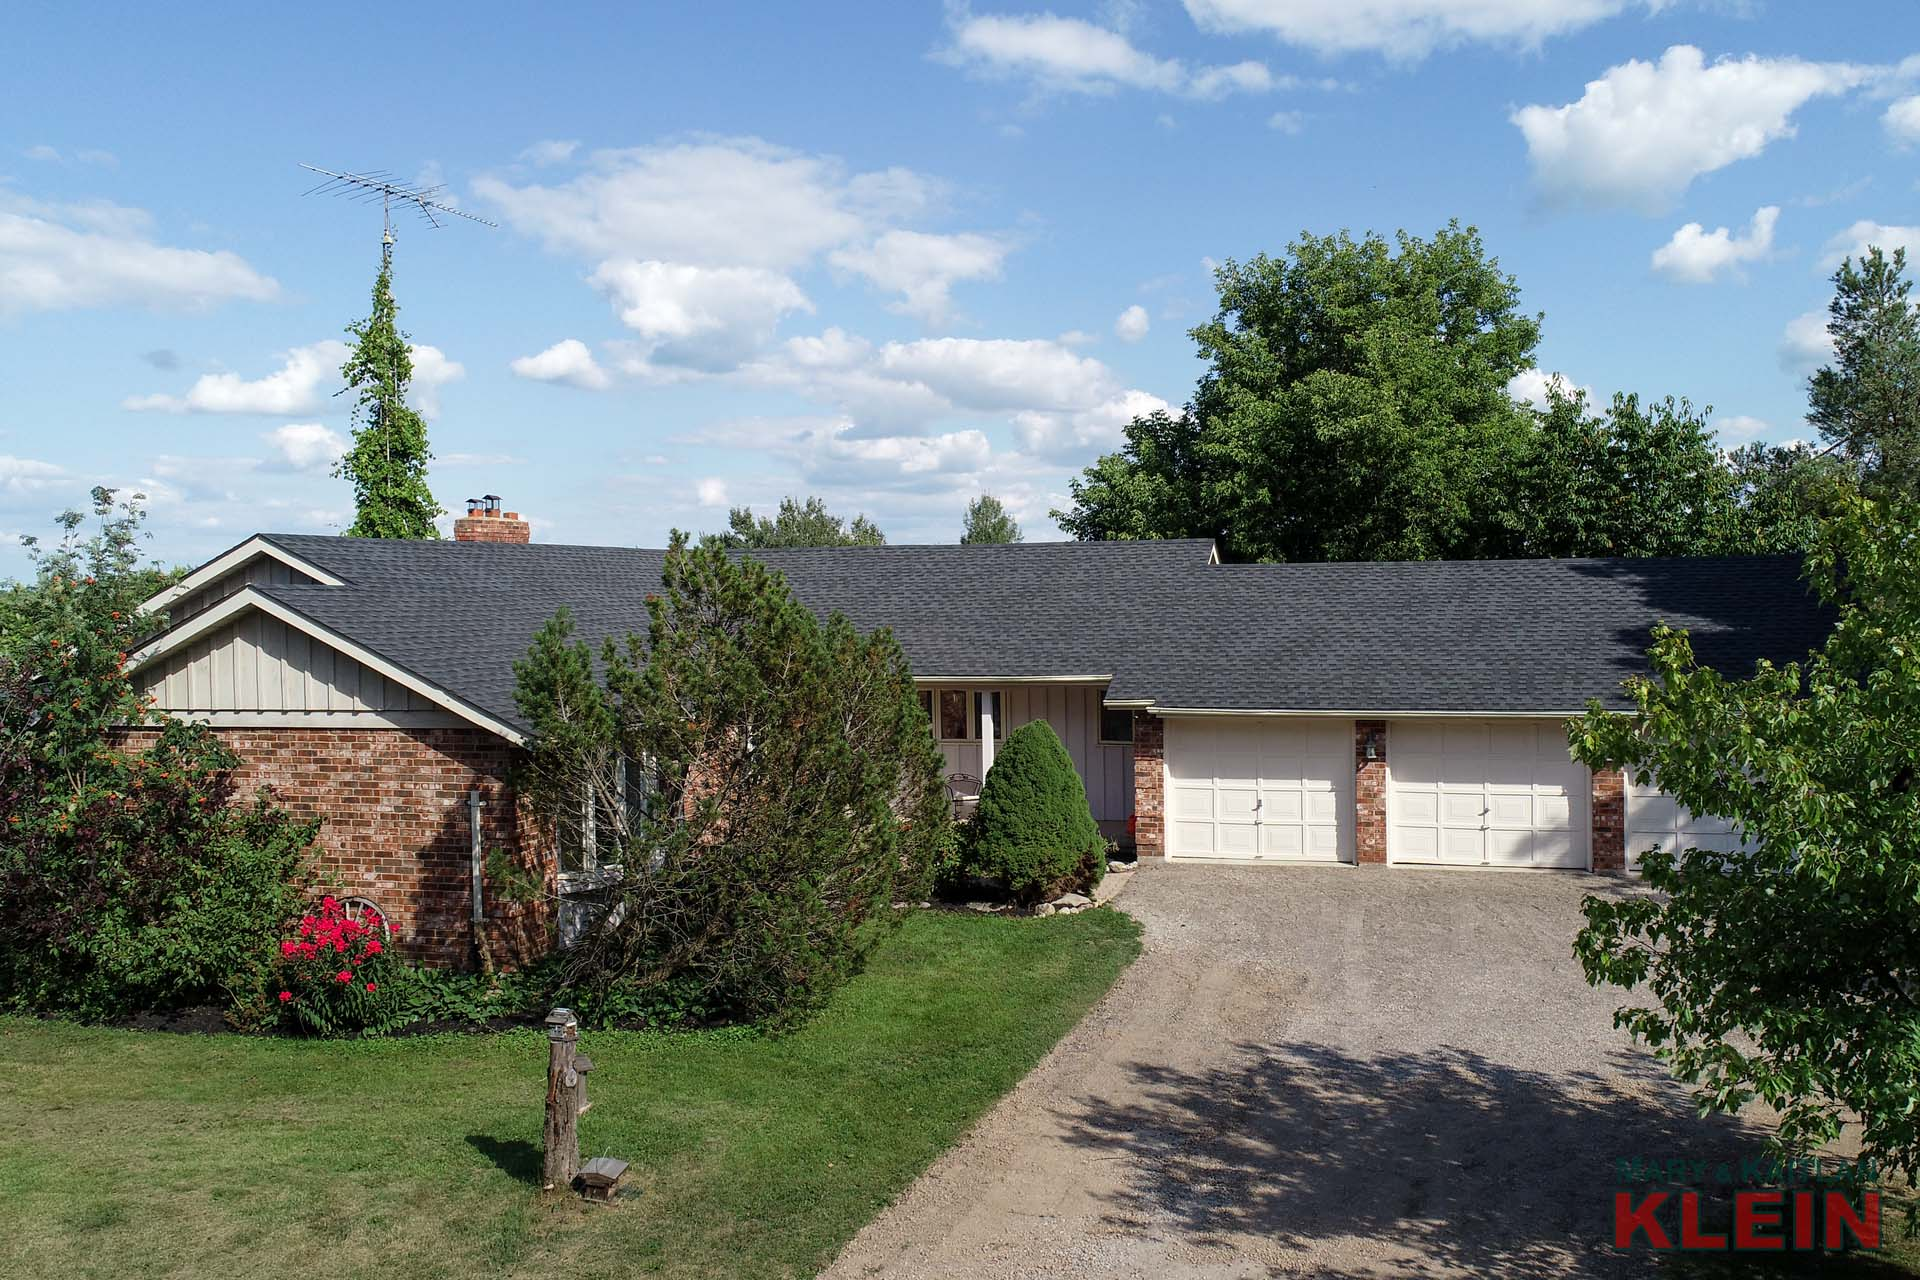 Brick Bungalow for sale, Caledon, Beech Grove Sideroad, Klein Team